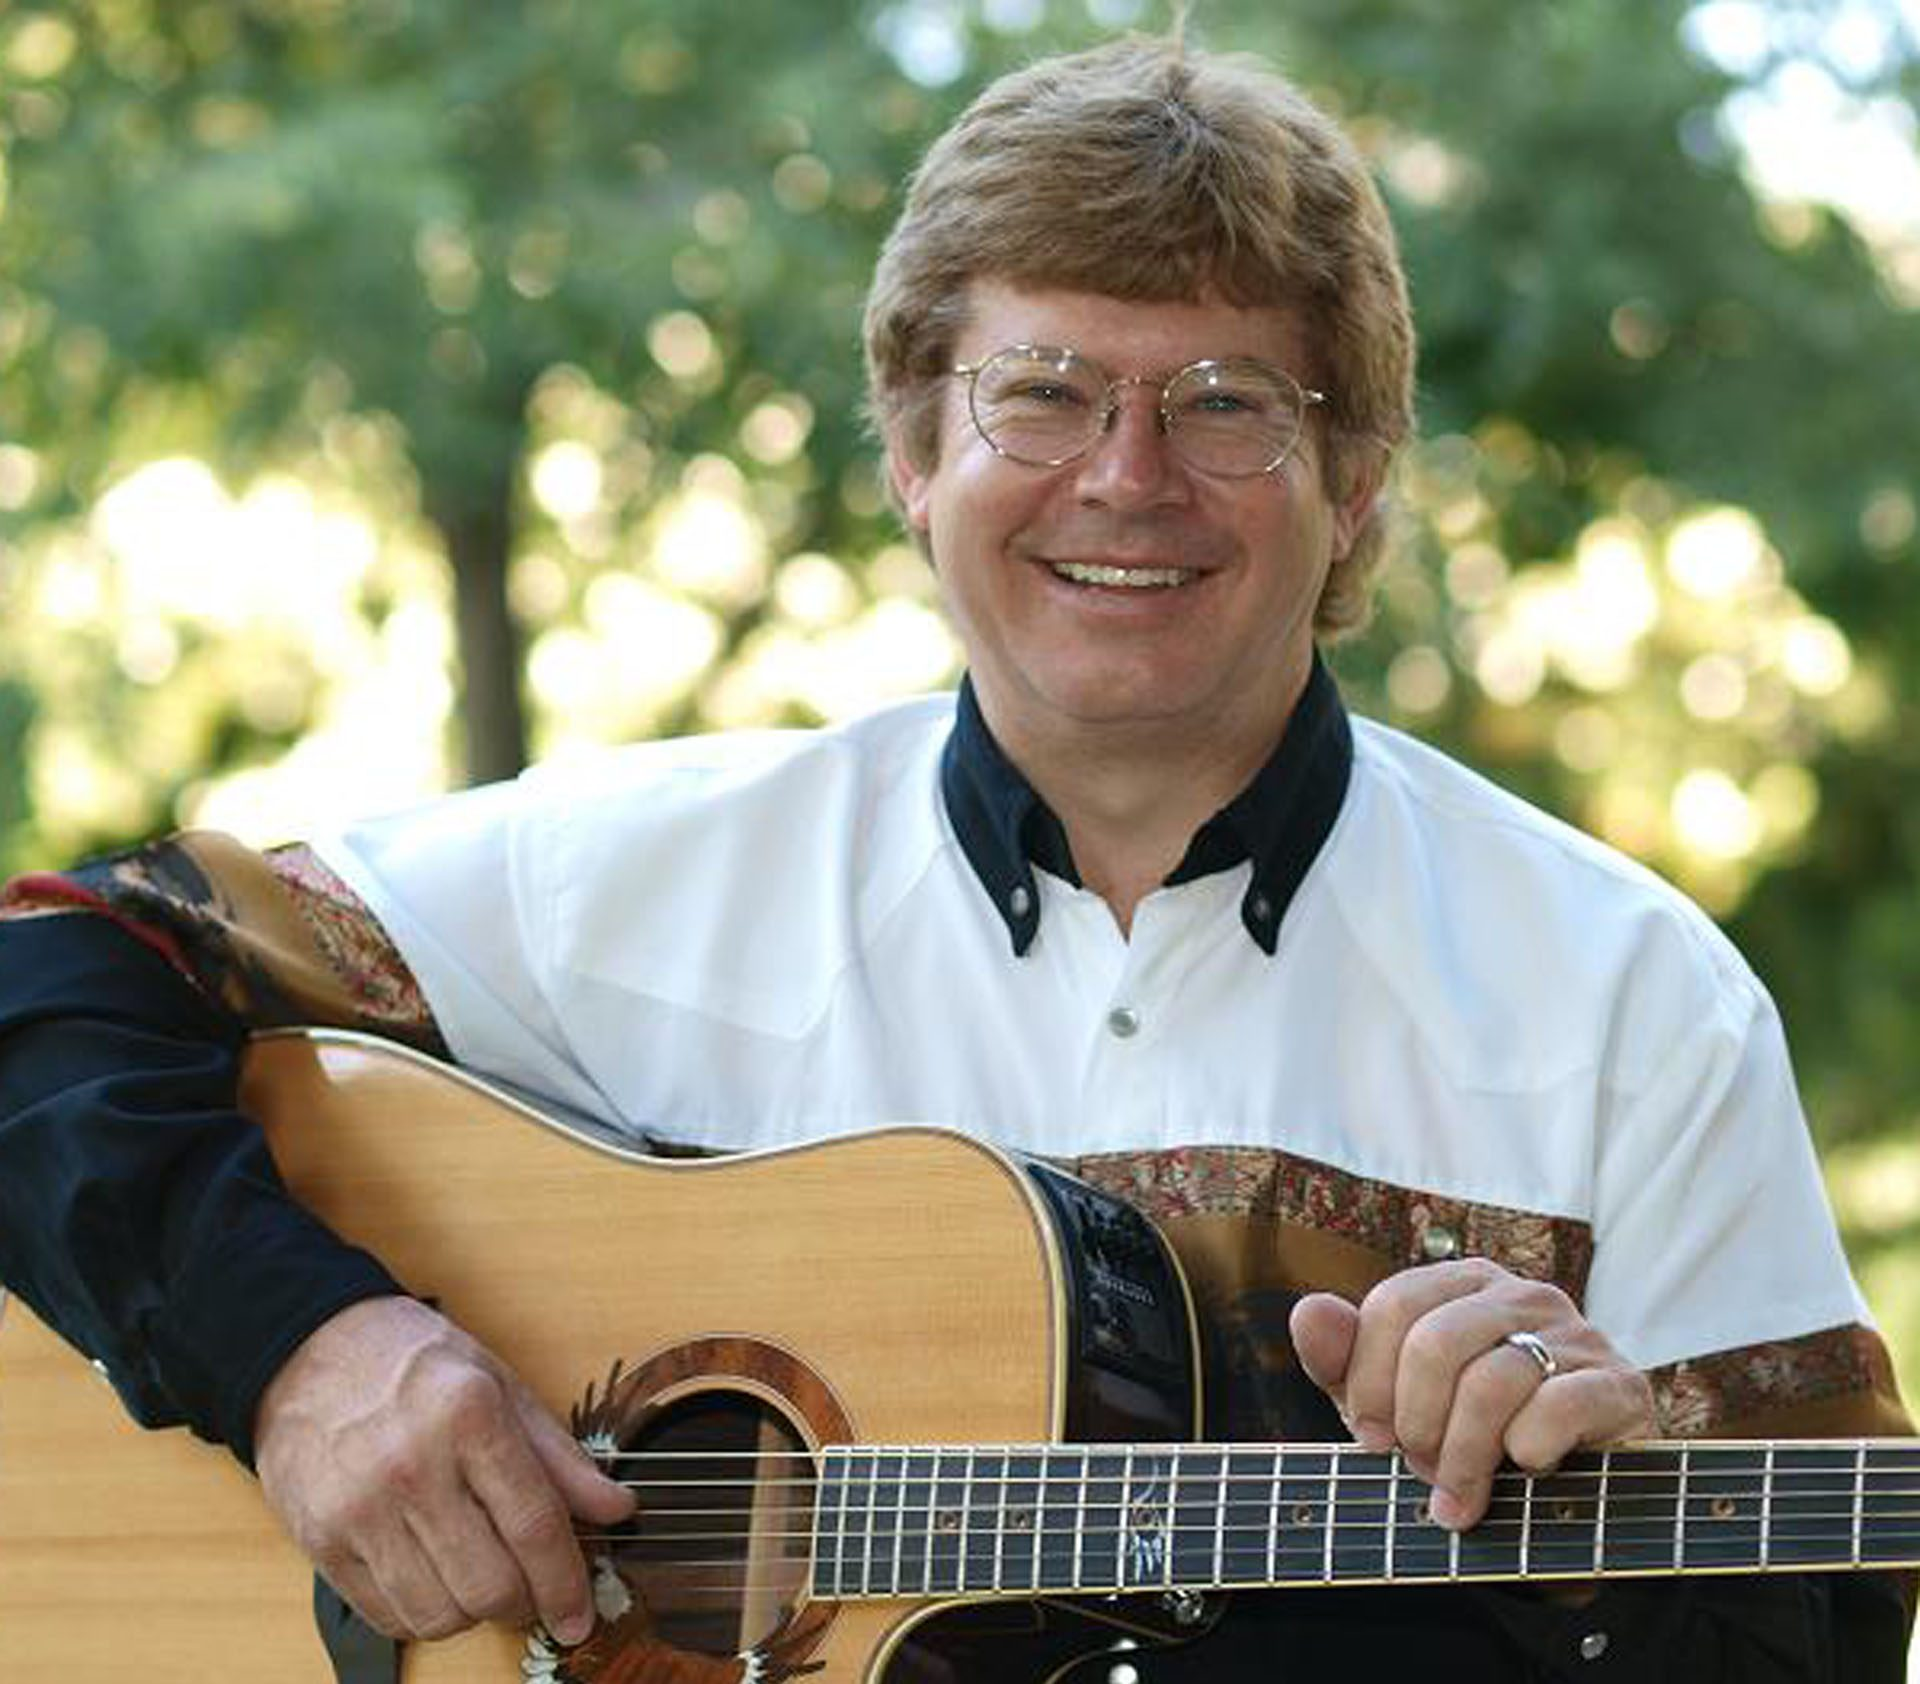 Take Me Home: The Music of John Denver   Mayo Performing Arts Center